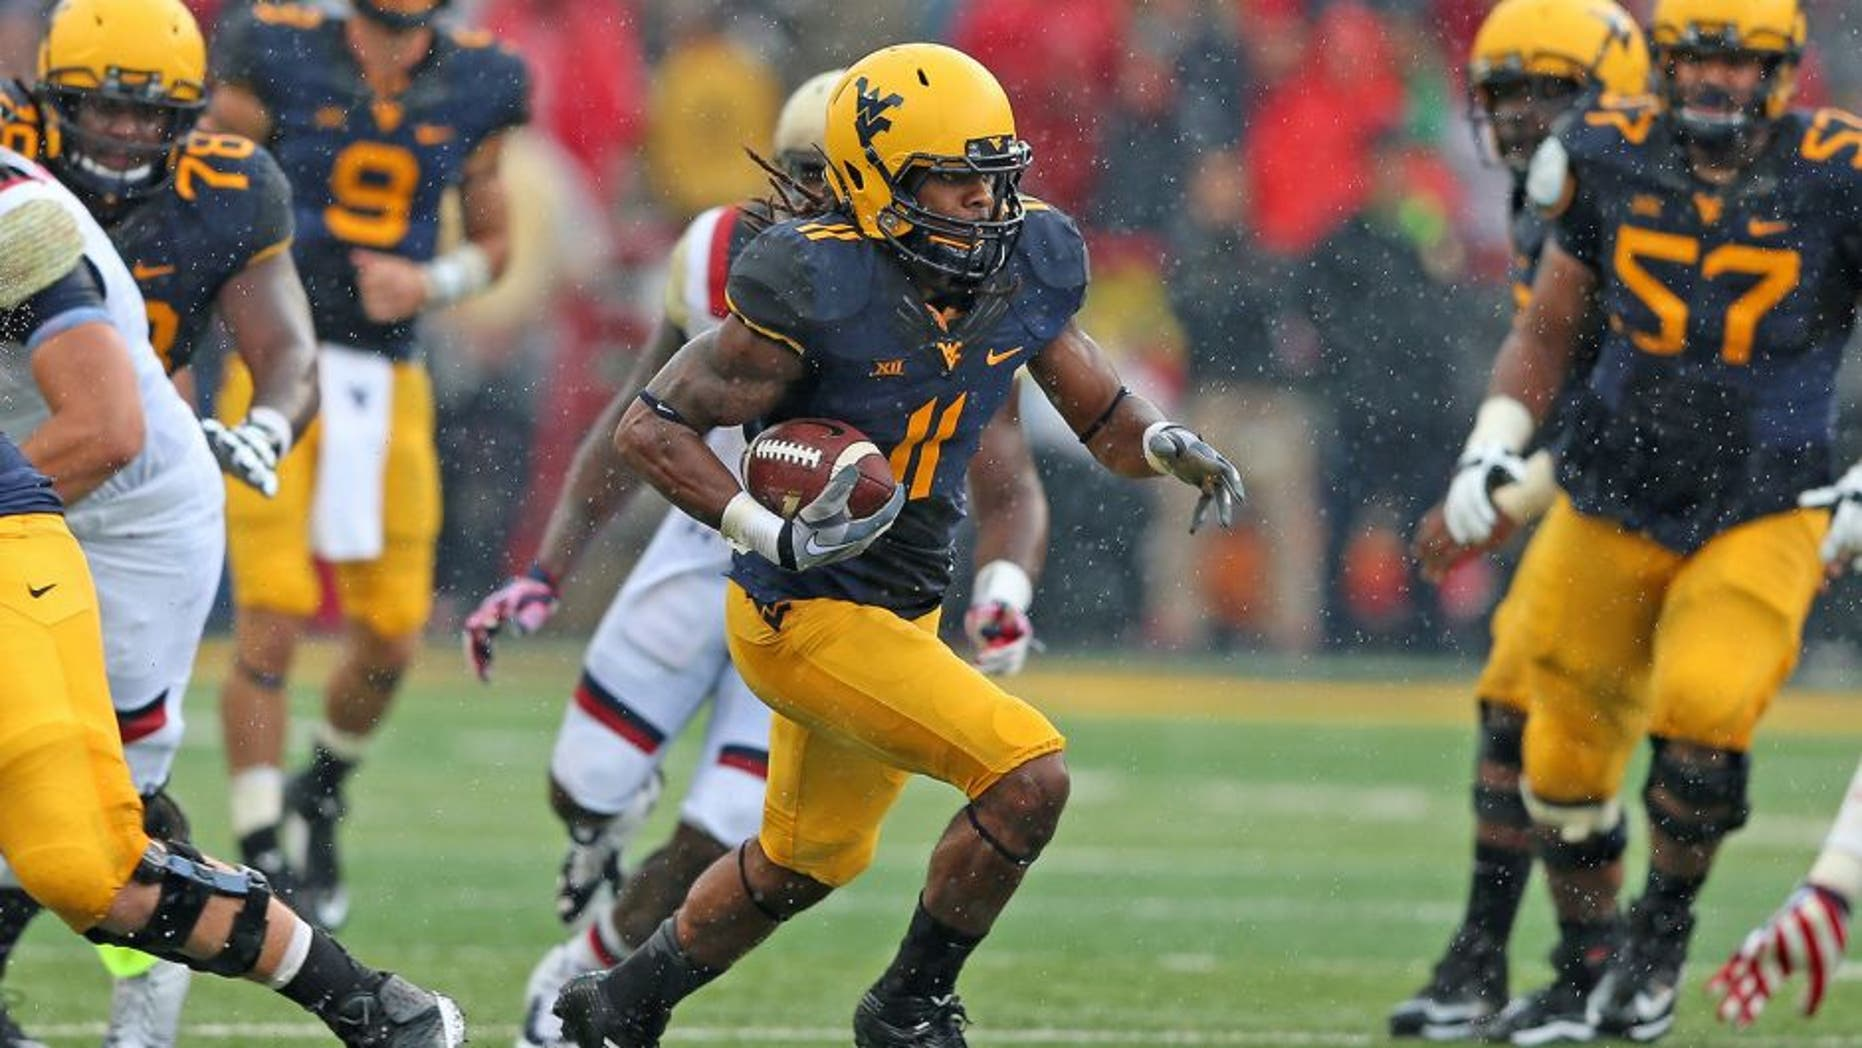 Sep 13, 2014; College Park, MD, USA; West Virginia Mountaineers wide receiver Kevin White (11) gains yards after his catch against the Maryland Terrapins at Byrd Stadium. Mandatory Credit: Mitch Stringer-USA TODAY Sports